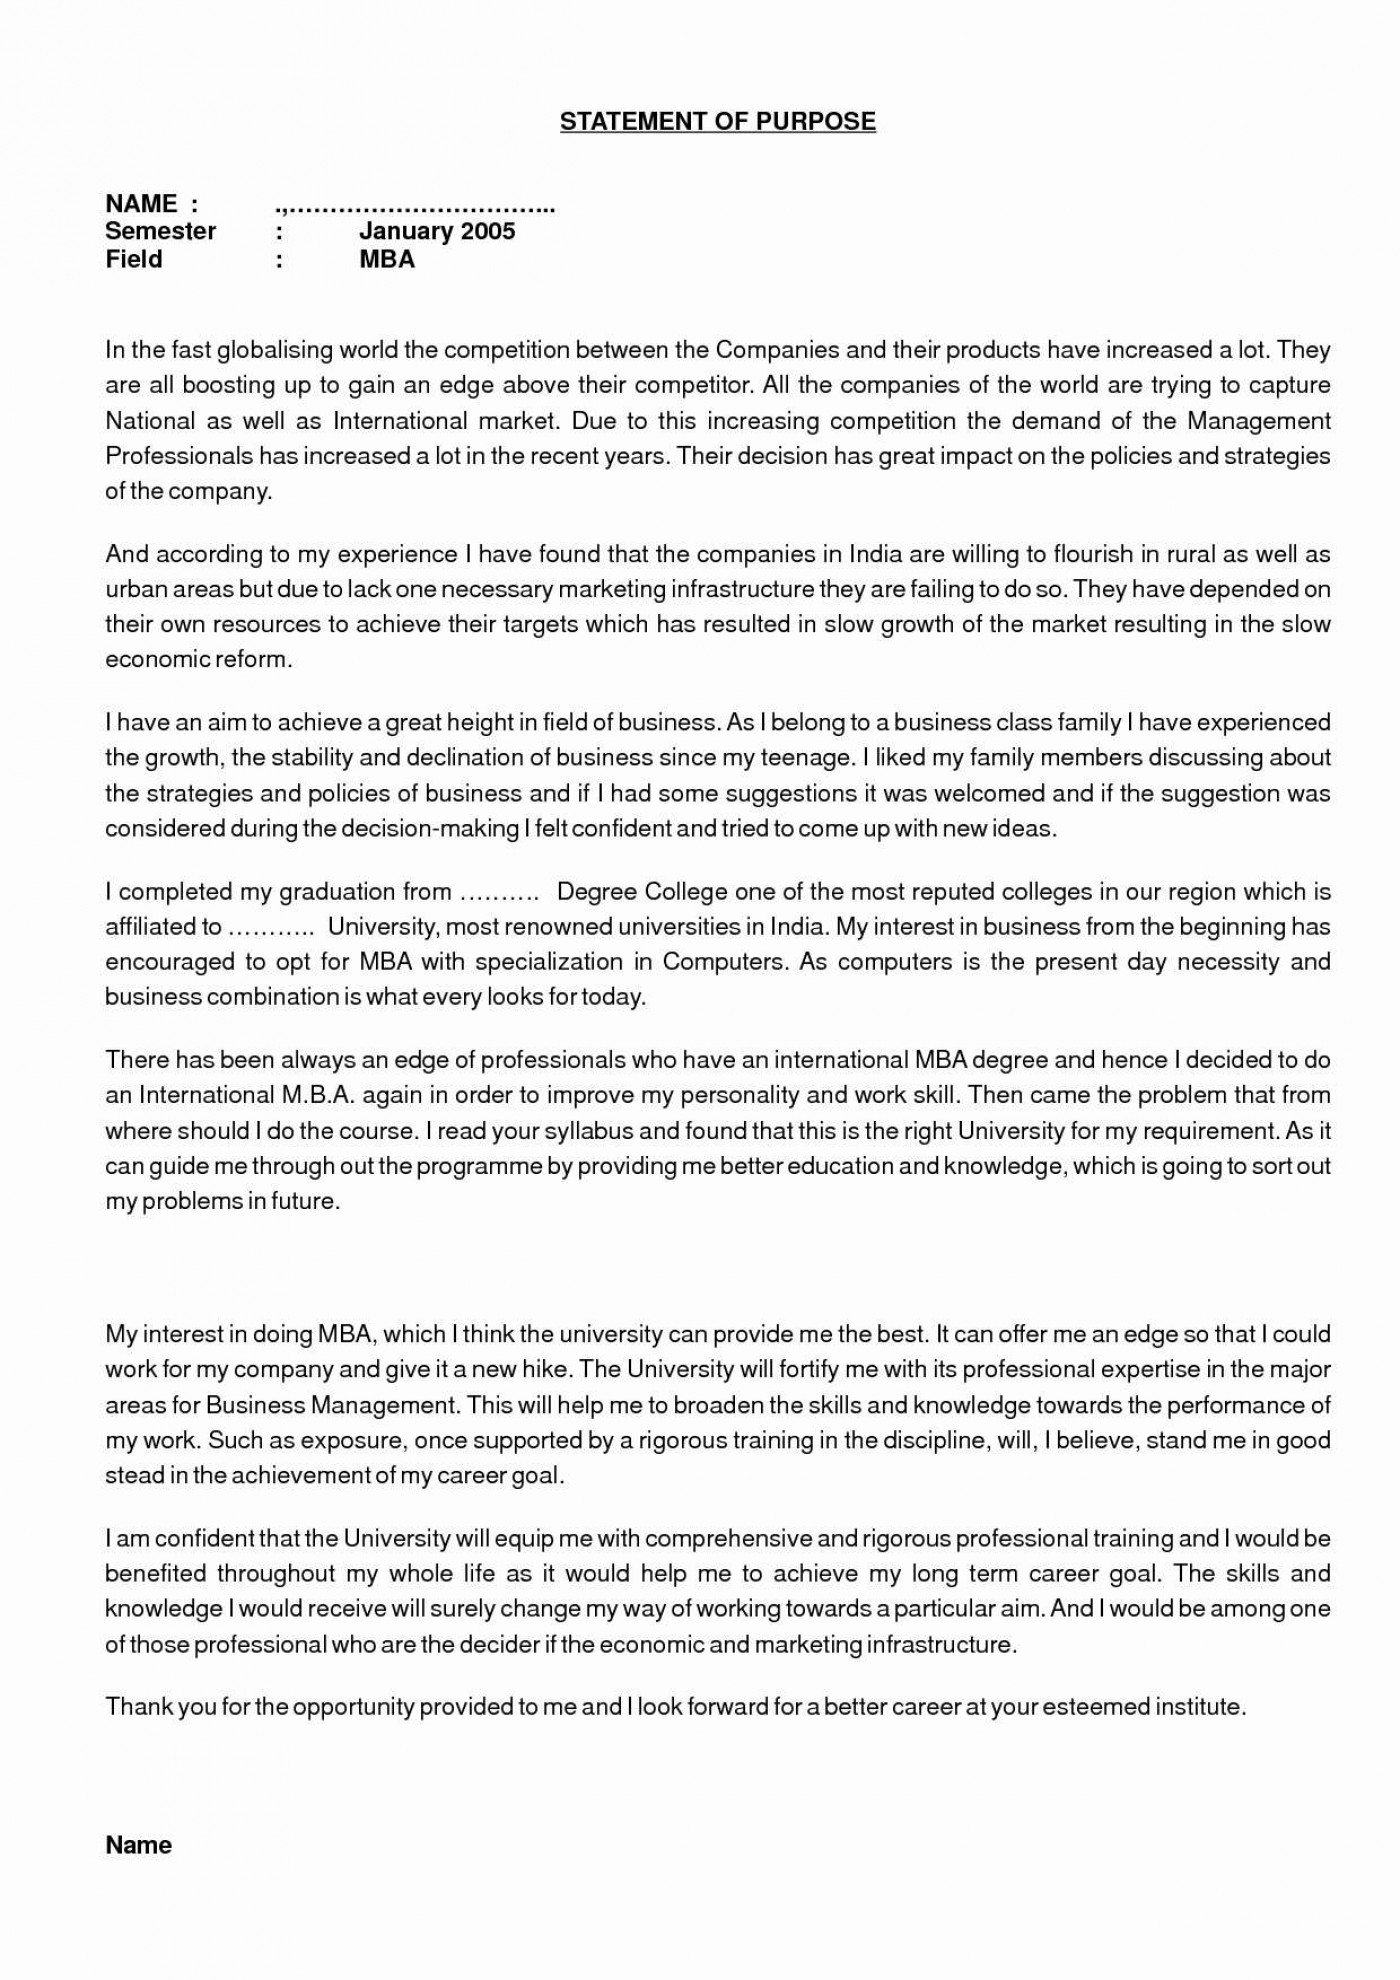 009 Essay Examples In Life For Mba Poemsrom Co Resume Template Inspirational Of Harvard Referenced Format Best Bus How Will College Help Me Achieve My On Achieving Stunning A Goal Narrative Example 1400